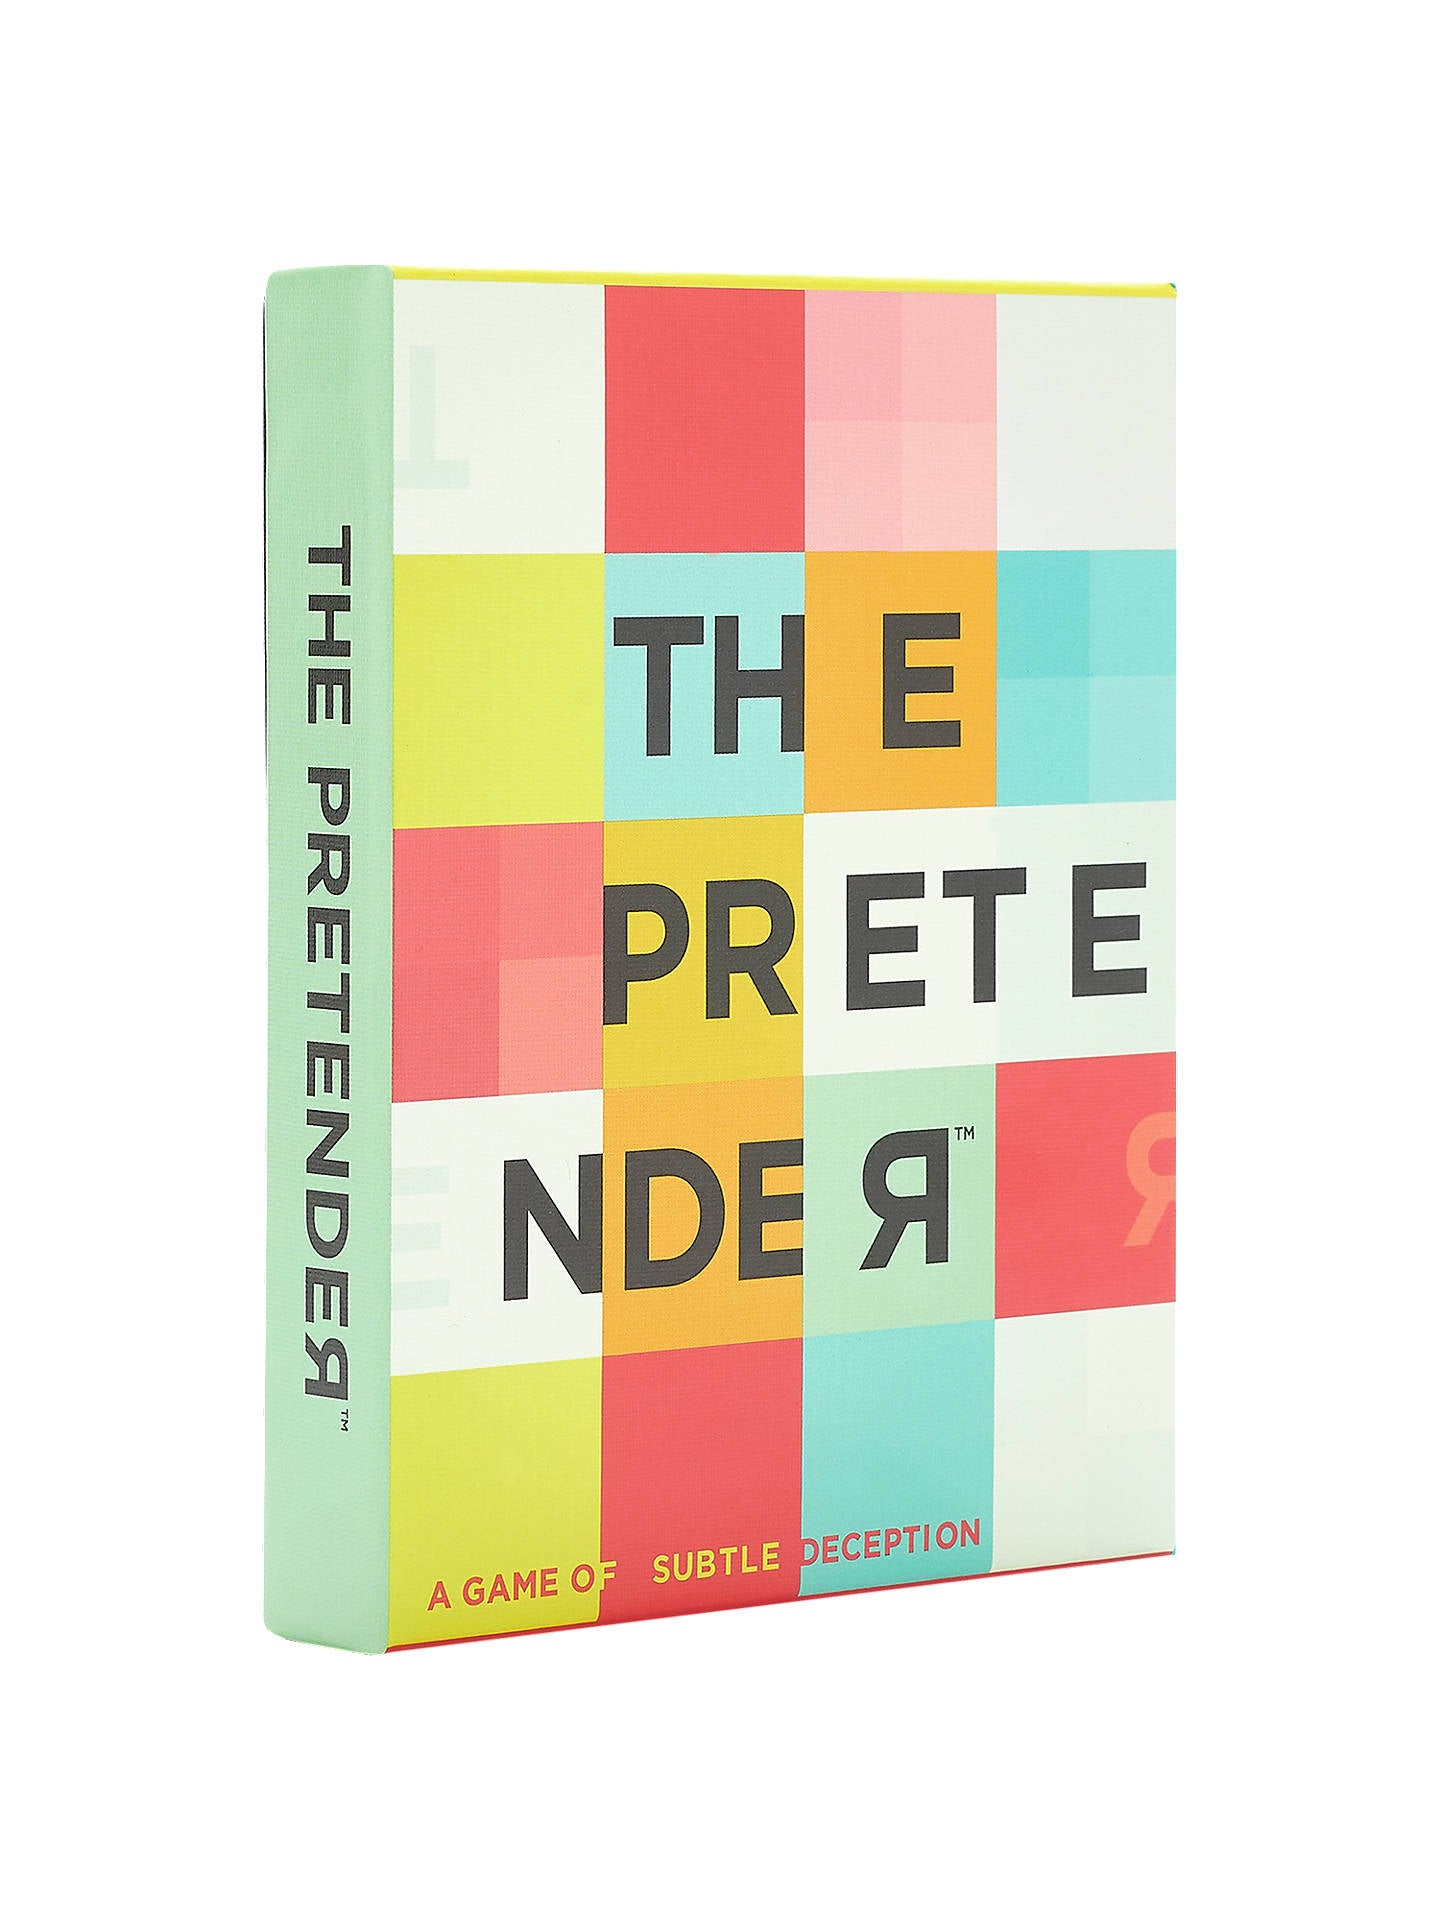 The Pretender: An Amusing Game of Subtle Deception